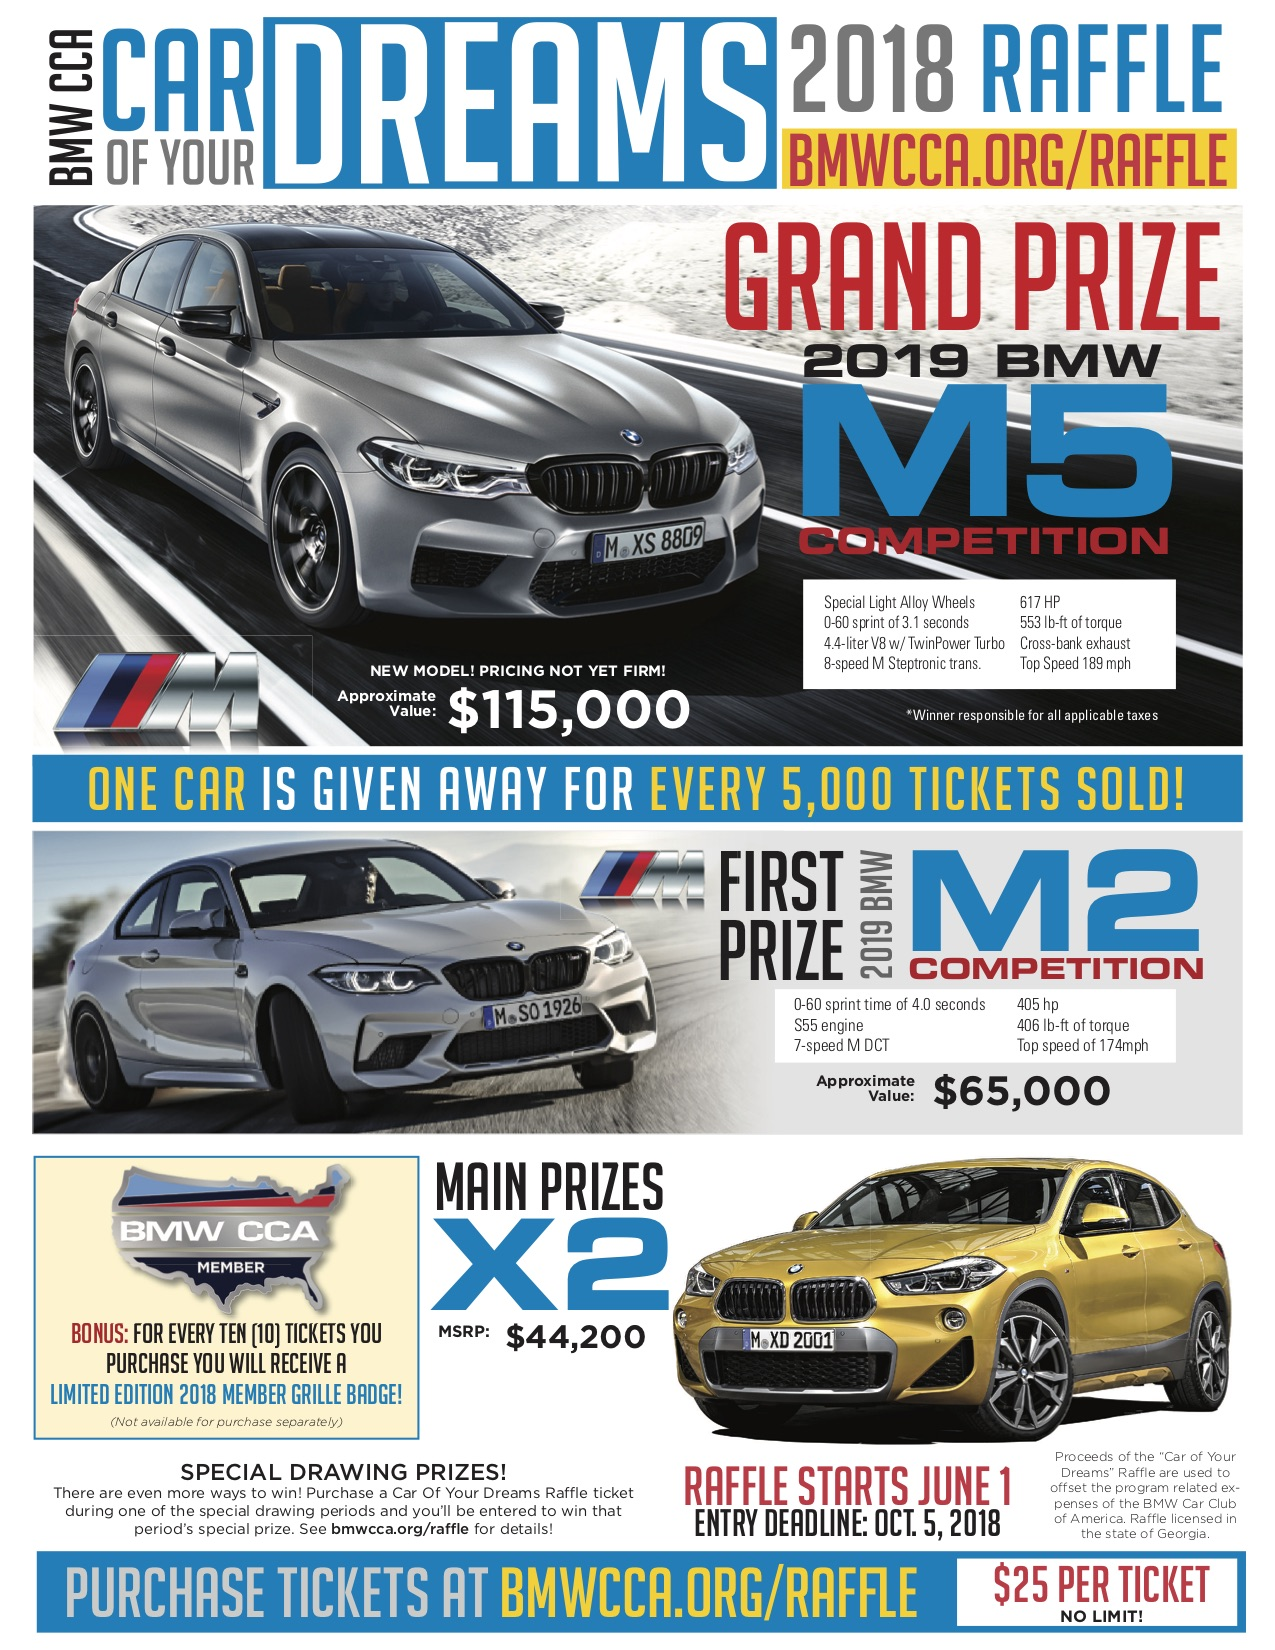 BMW CCA Car Of Your Dreams Raffle has just begun